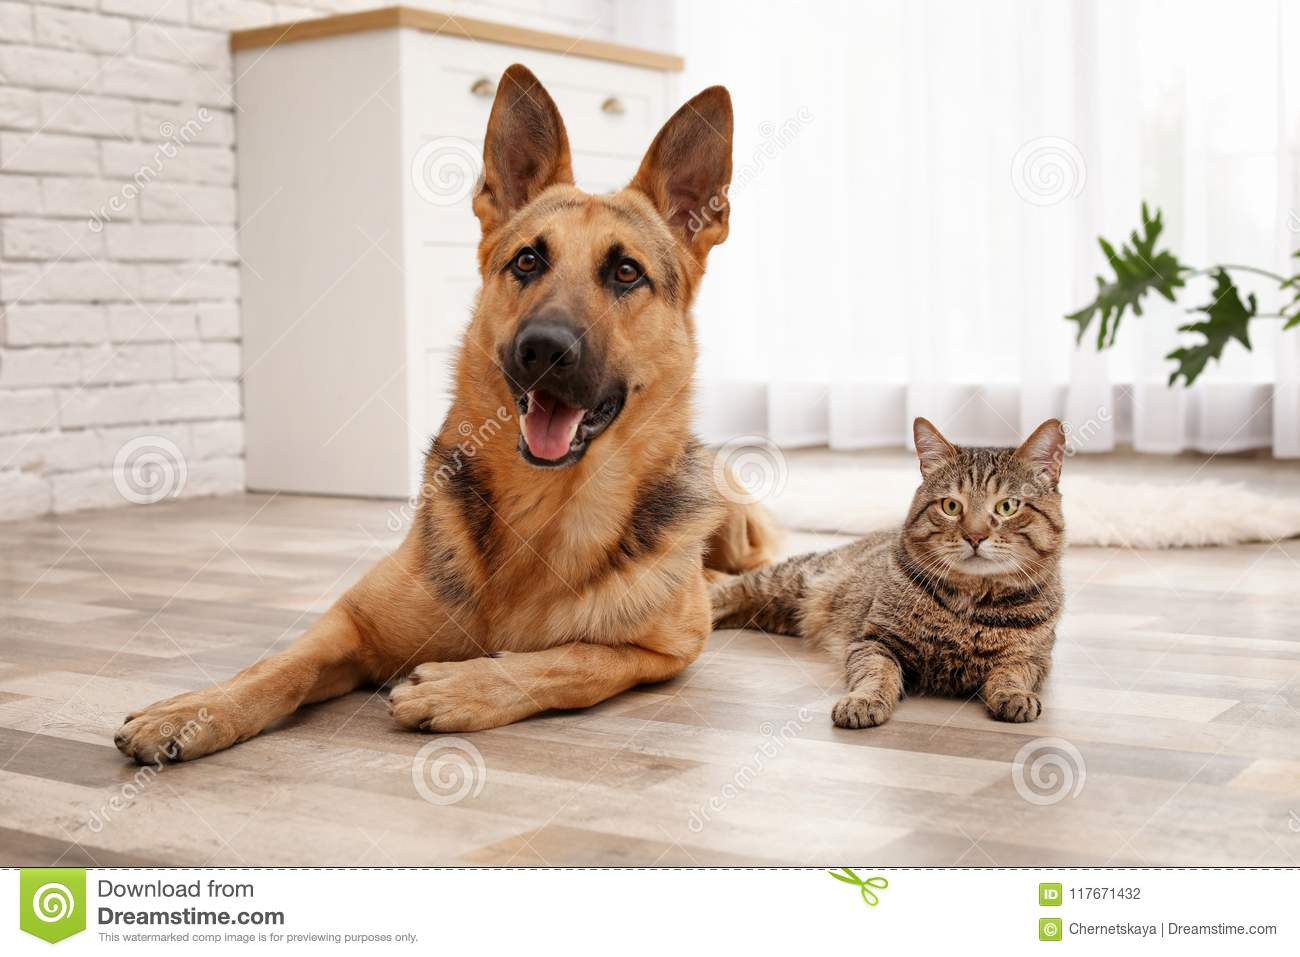 Adorable cat and dog resting together at home